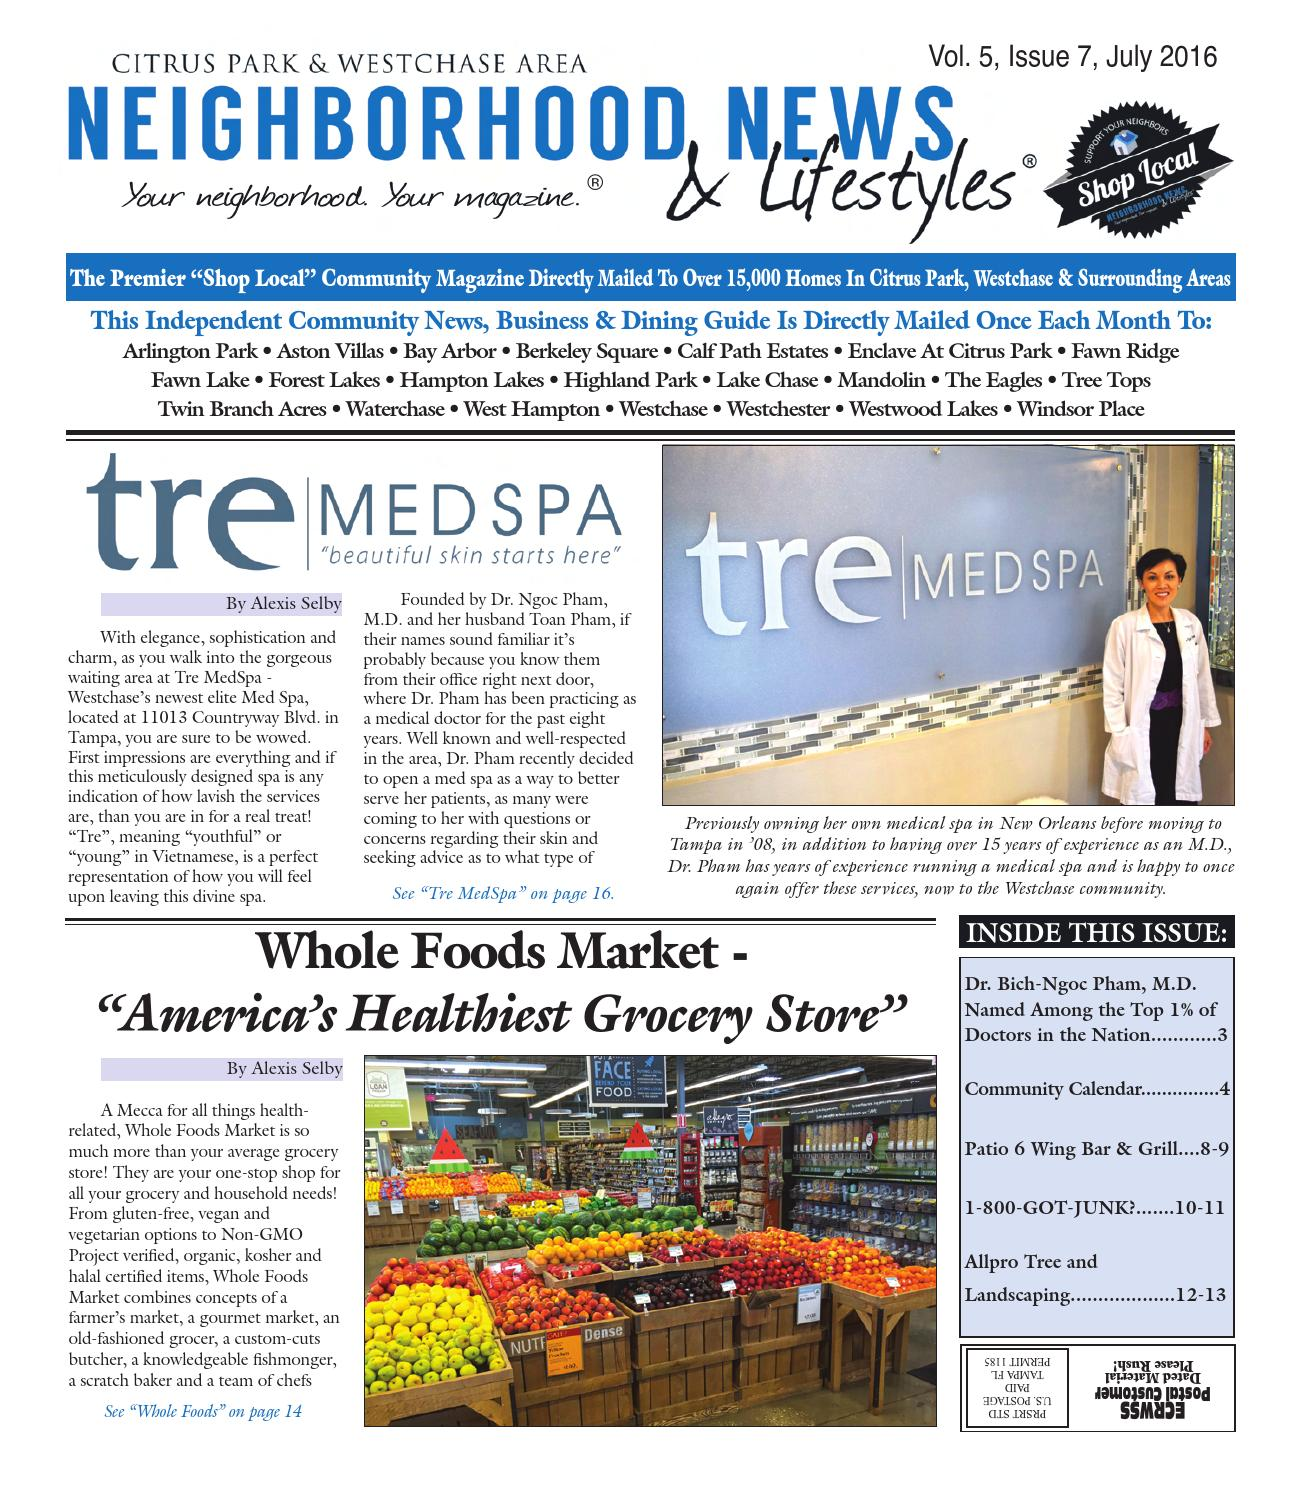 Westchase - Vol  5, Issue 7, July 2016 by Tampa Bay News